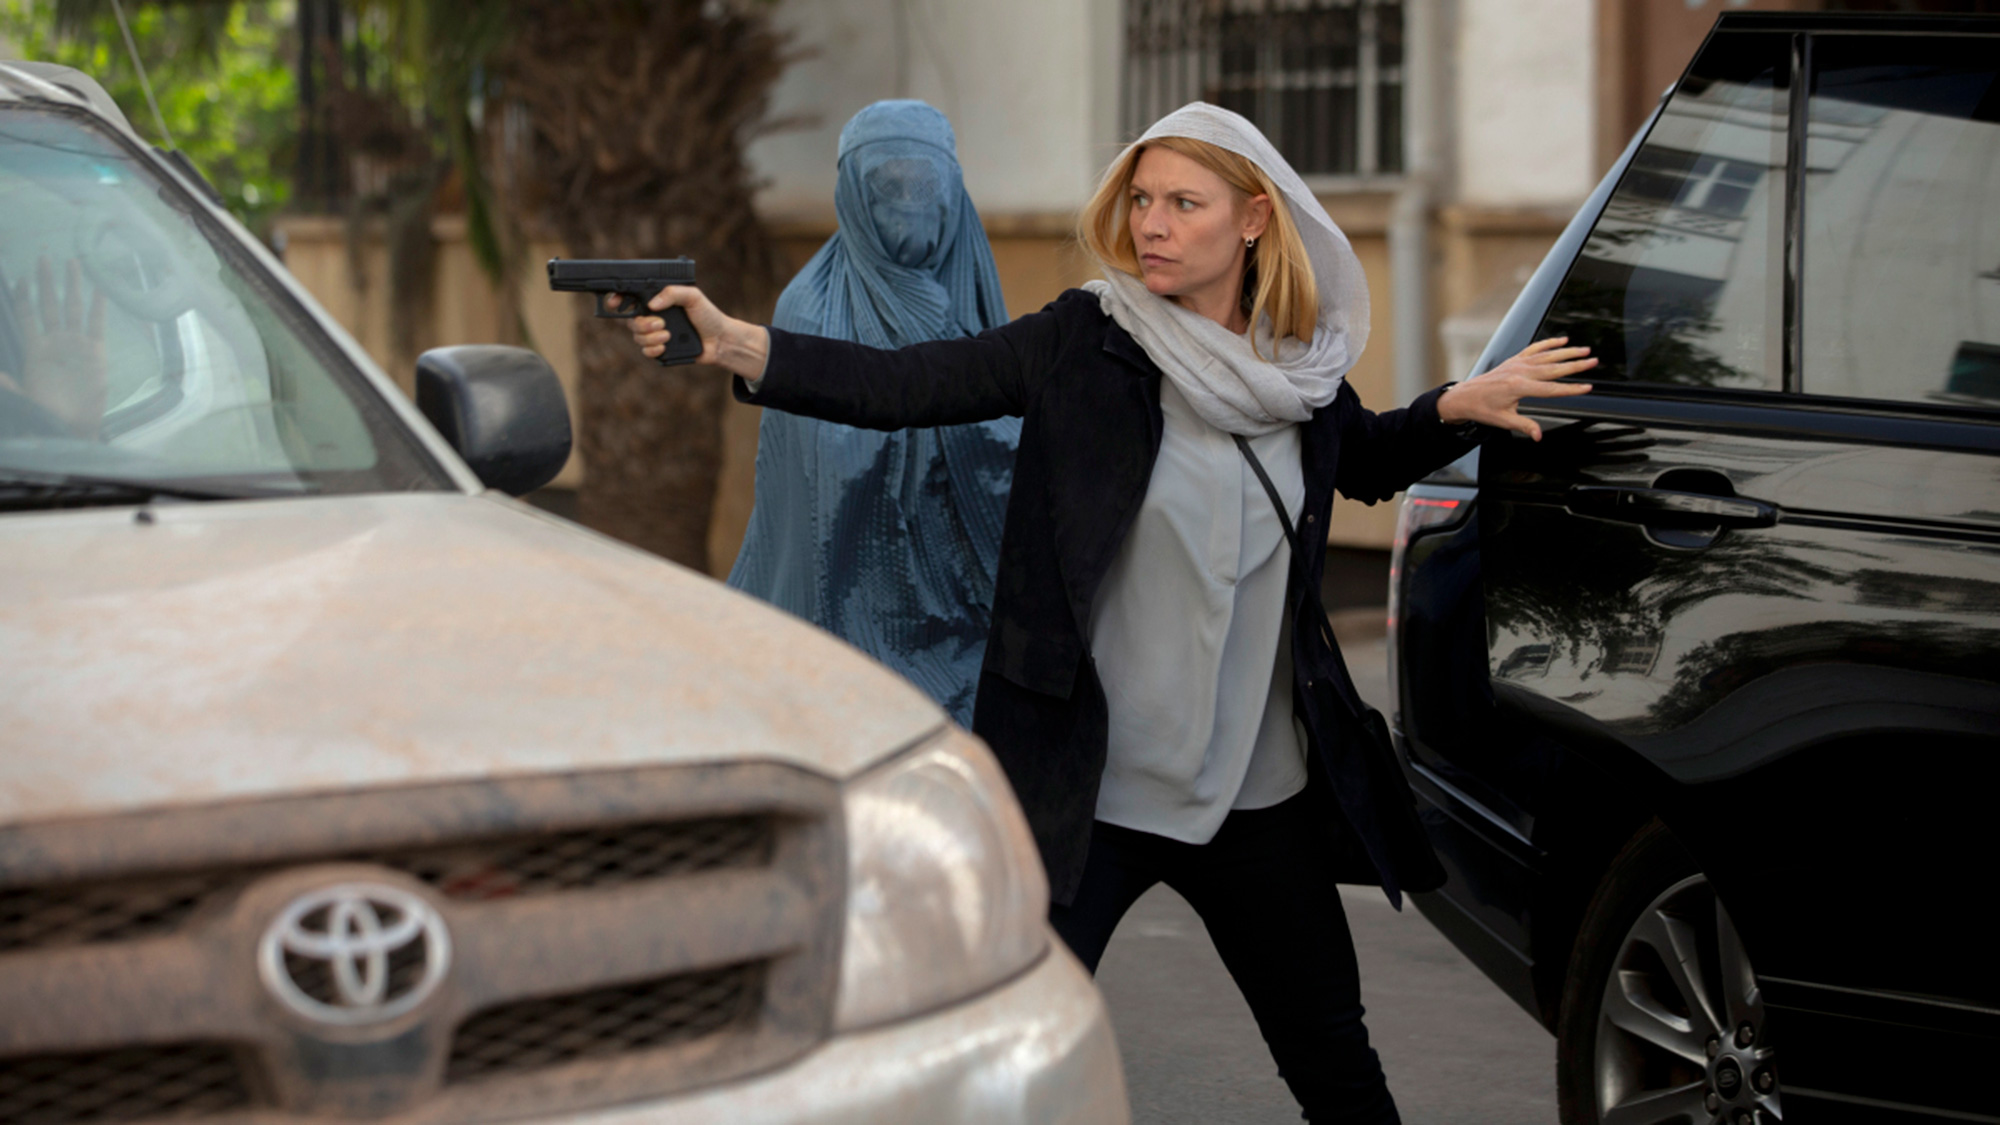 How to watch Homeland: stream season 8 online from anywhere